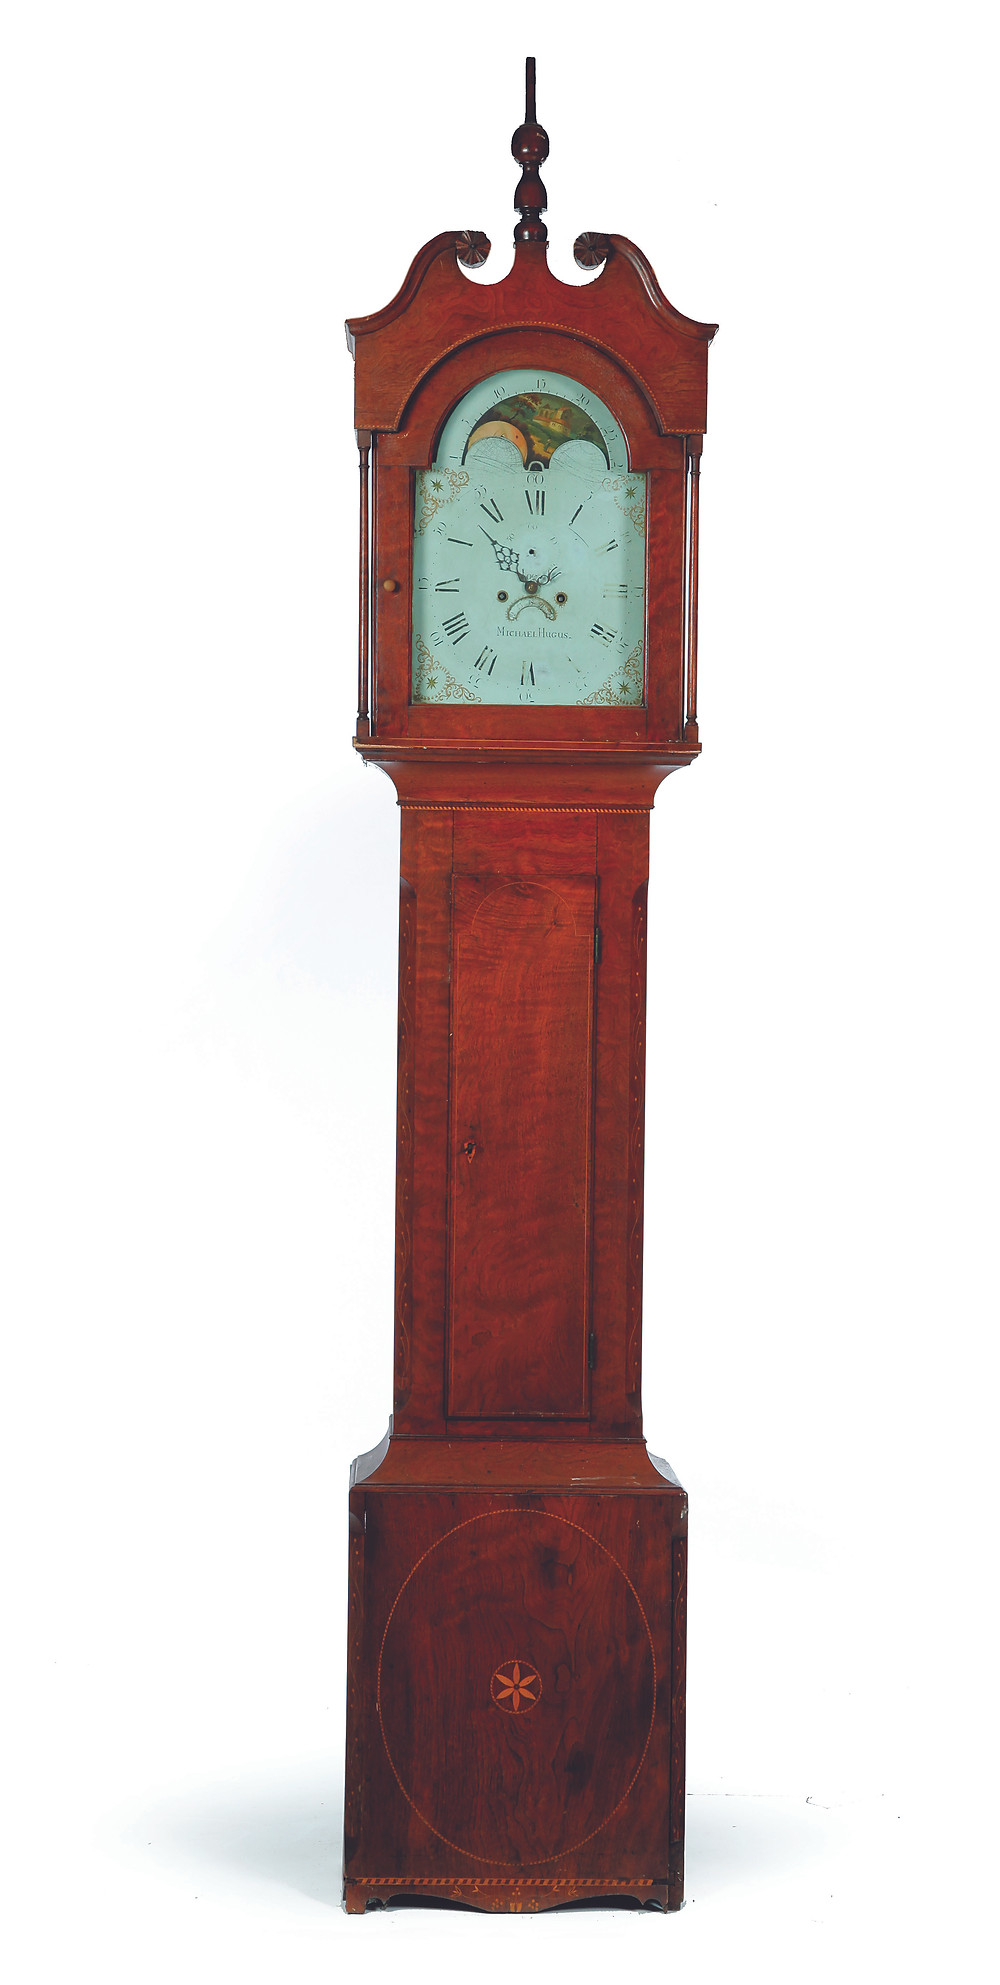 The top lot of the auction was this tall-case clock signed by Michael Hugus (1775-1825) of Somerset County, Pennsylvania. $10,200